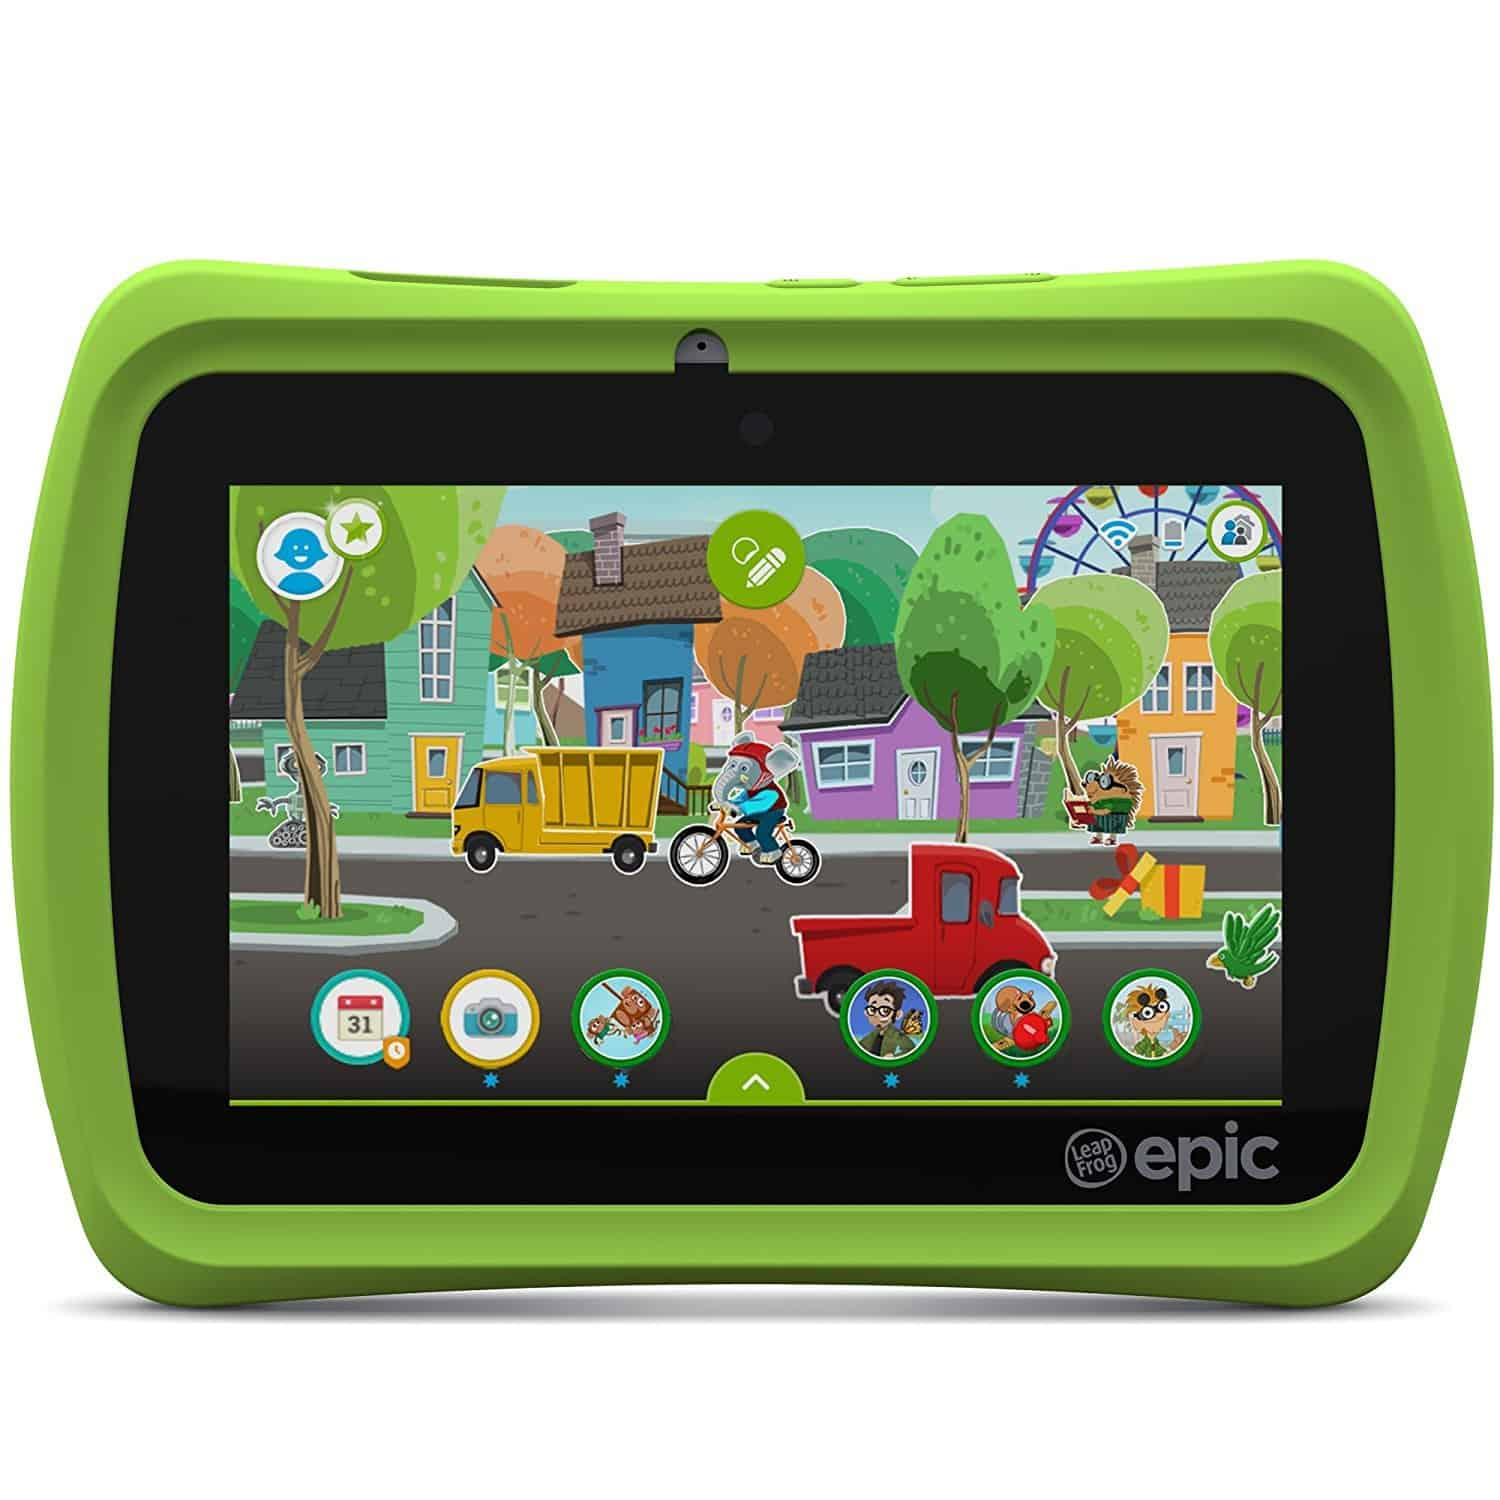 Leapfrog-Epic-Review